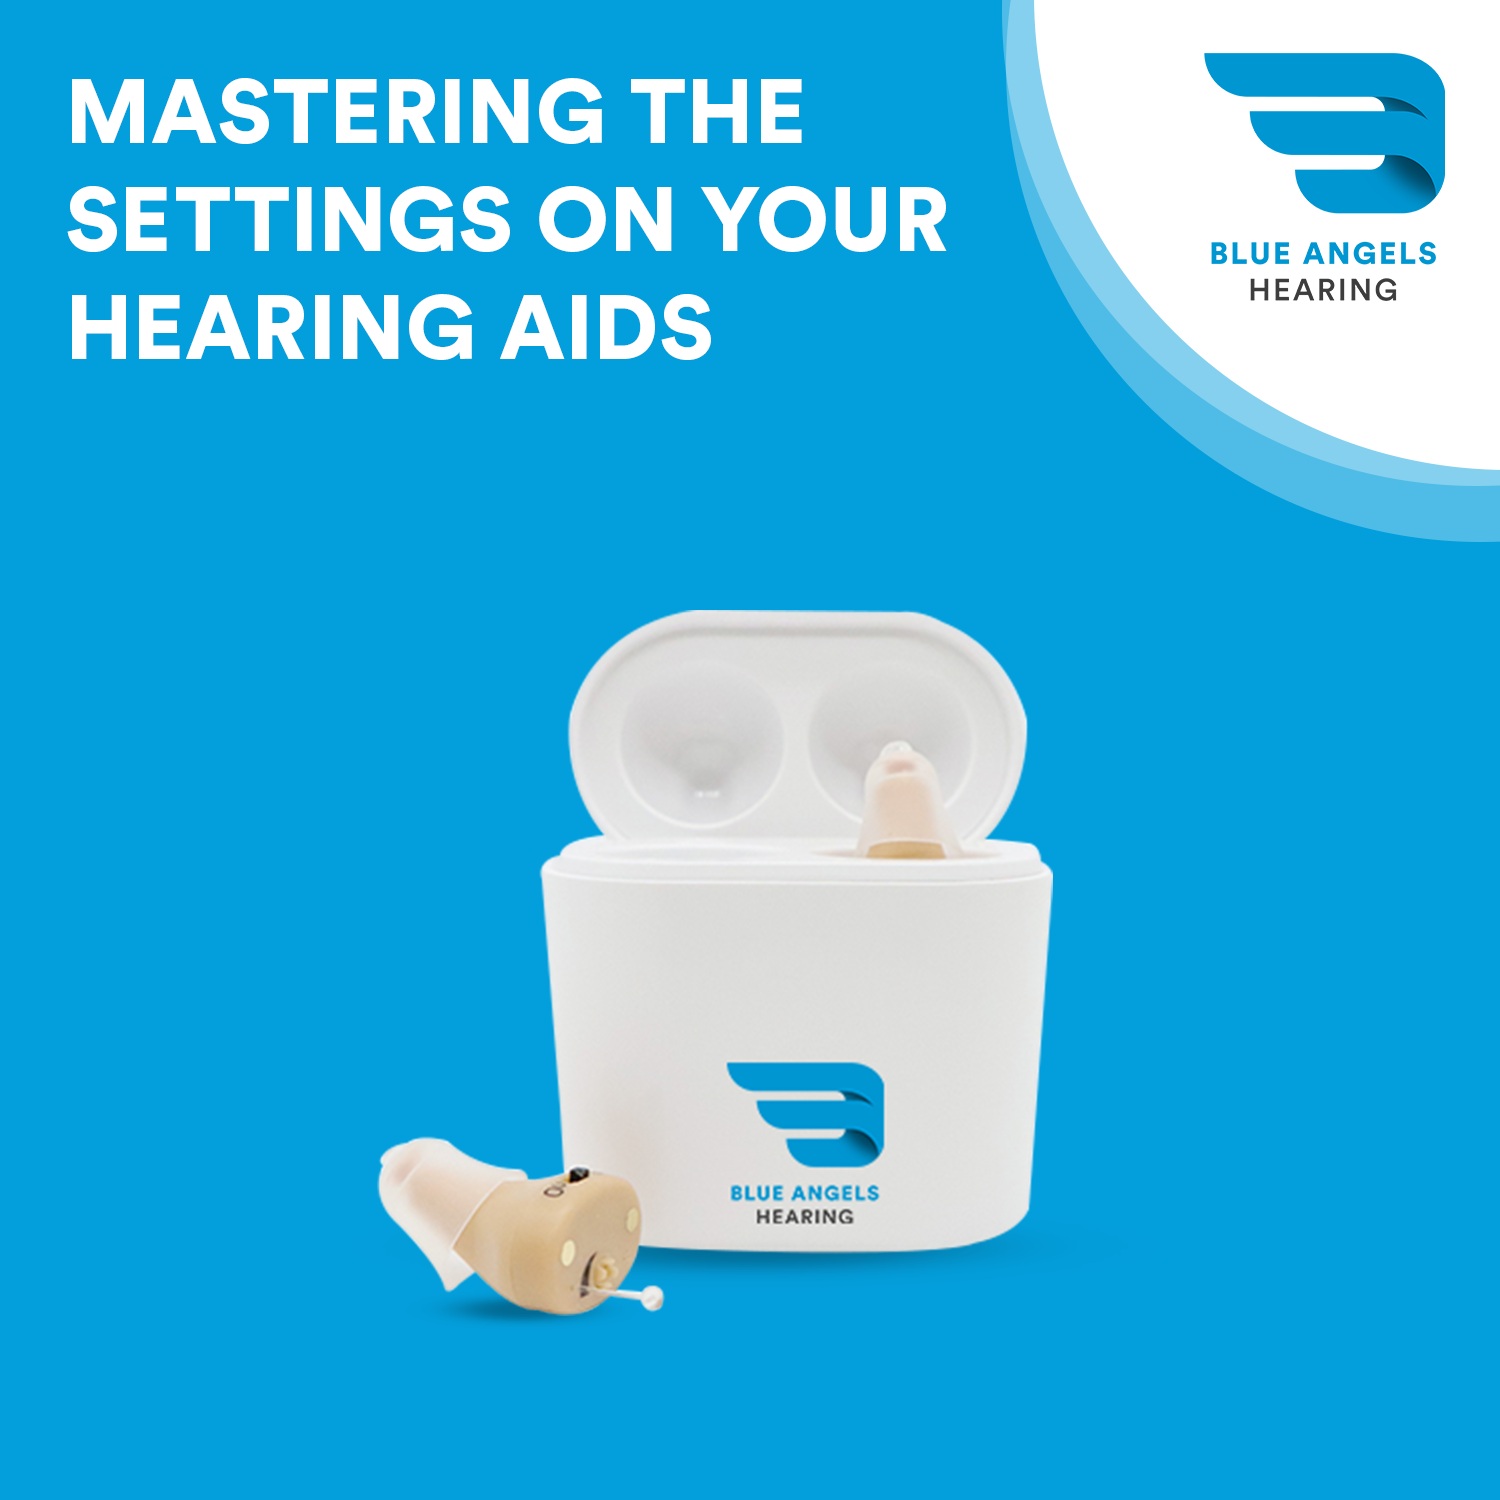 Mastering the Settings on Your Hearing Aids